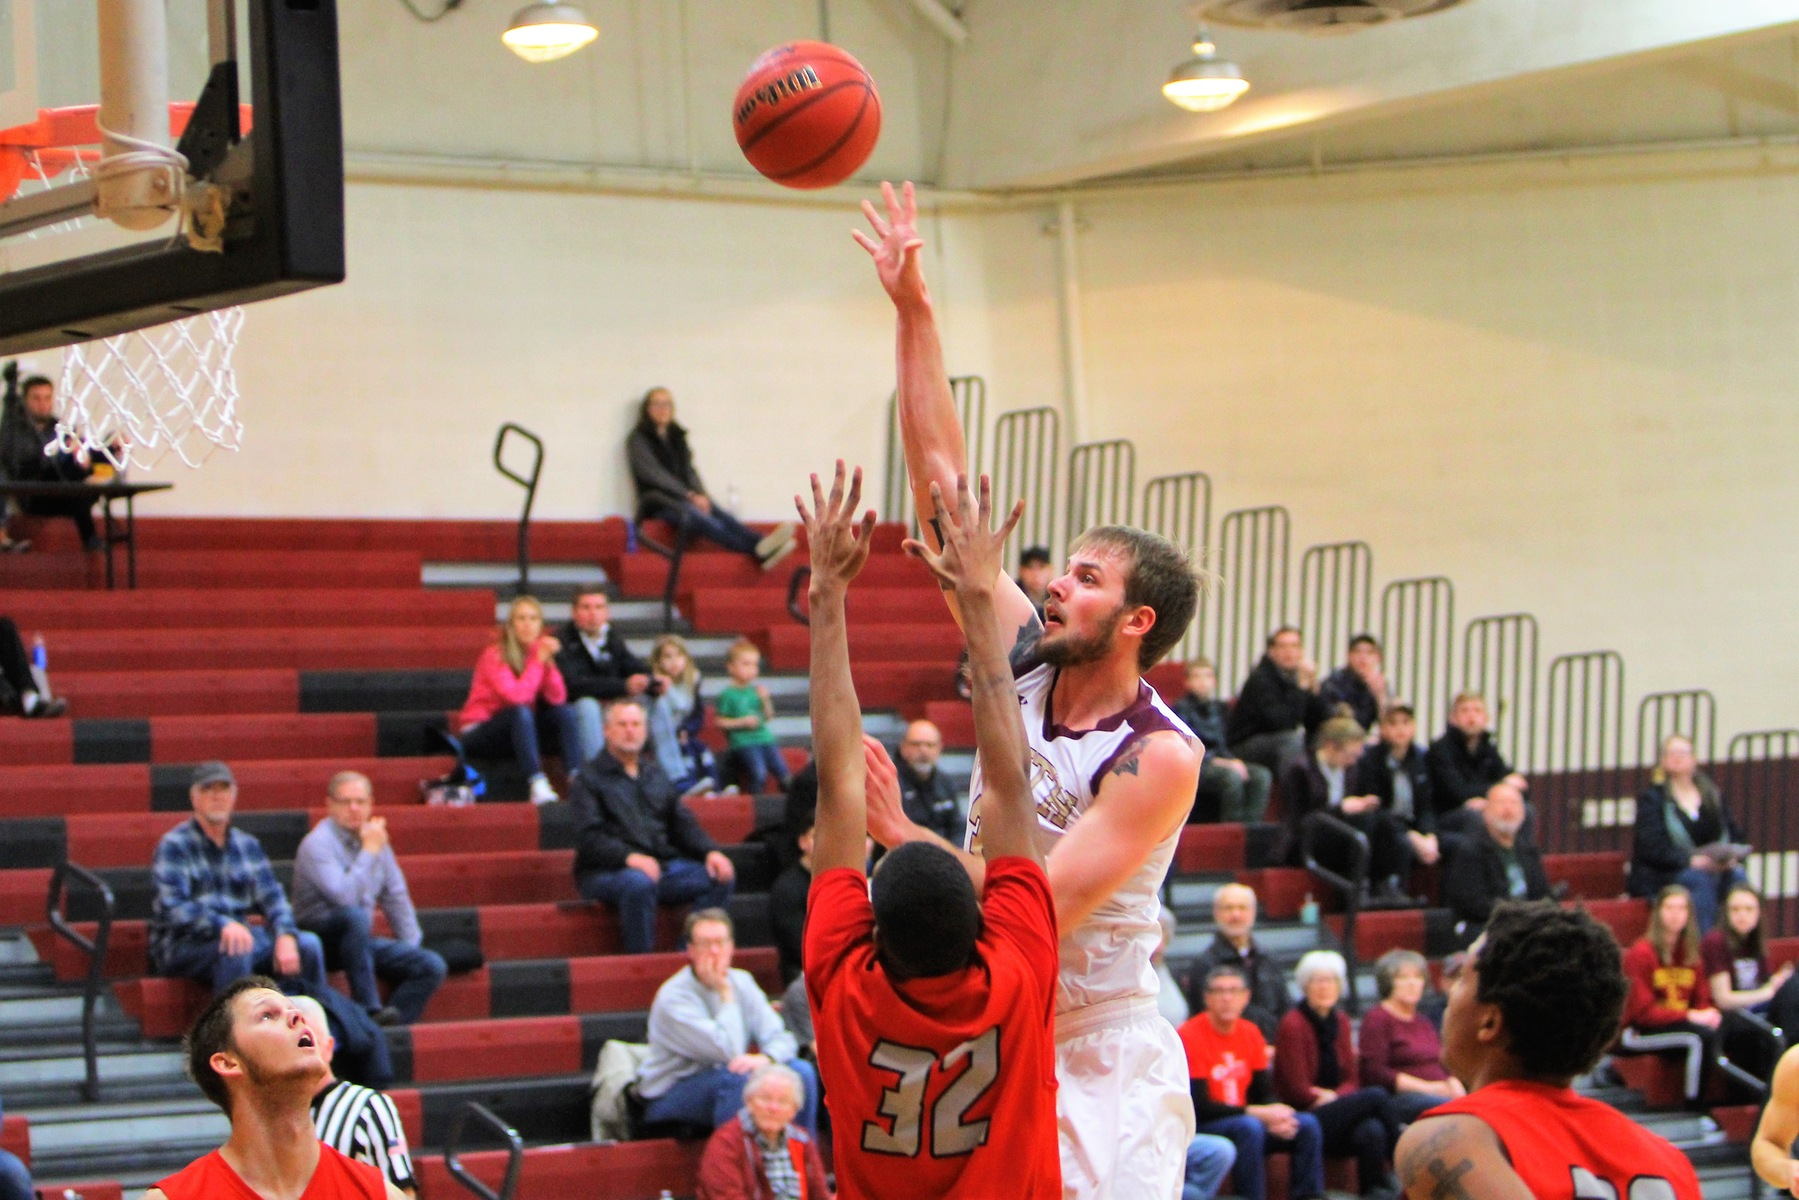 Tanner Van Beek's season-high 25 points were not enough in a one-point loss to Barclay